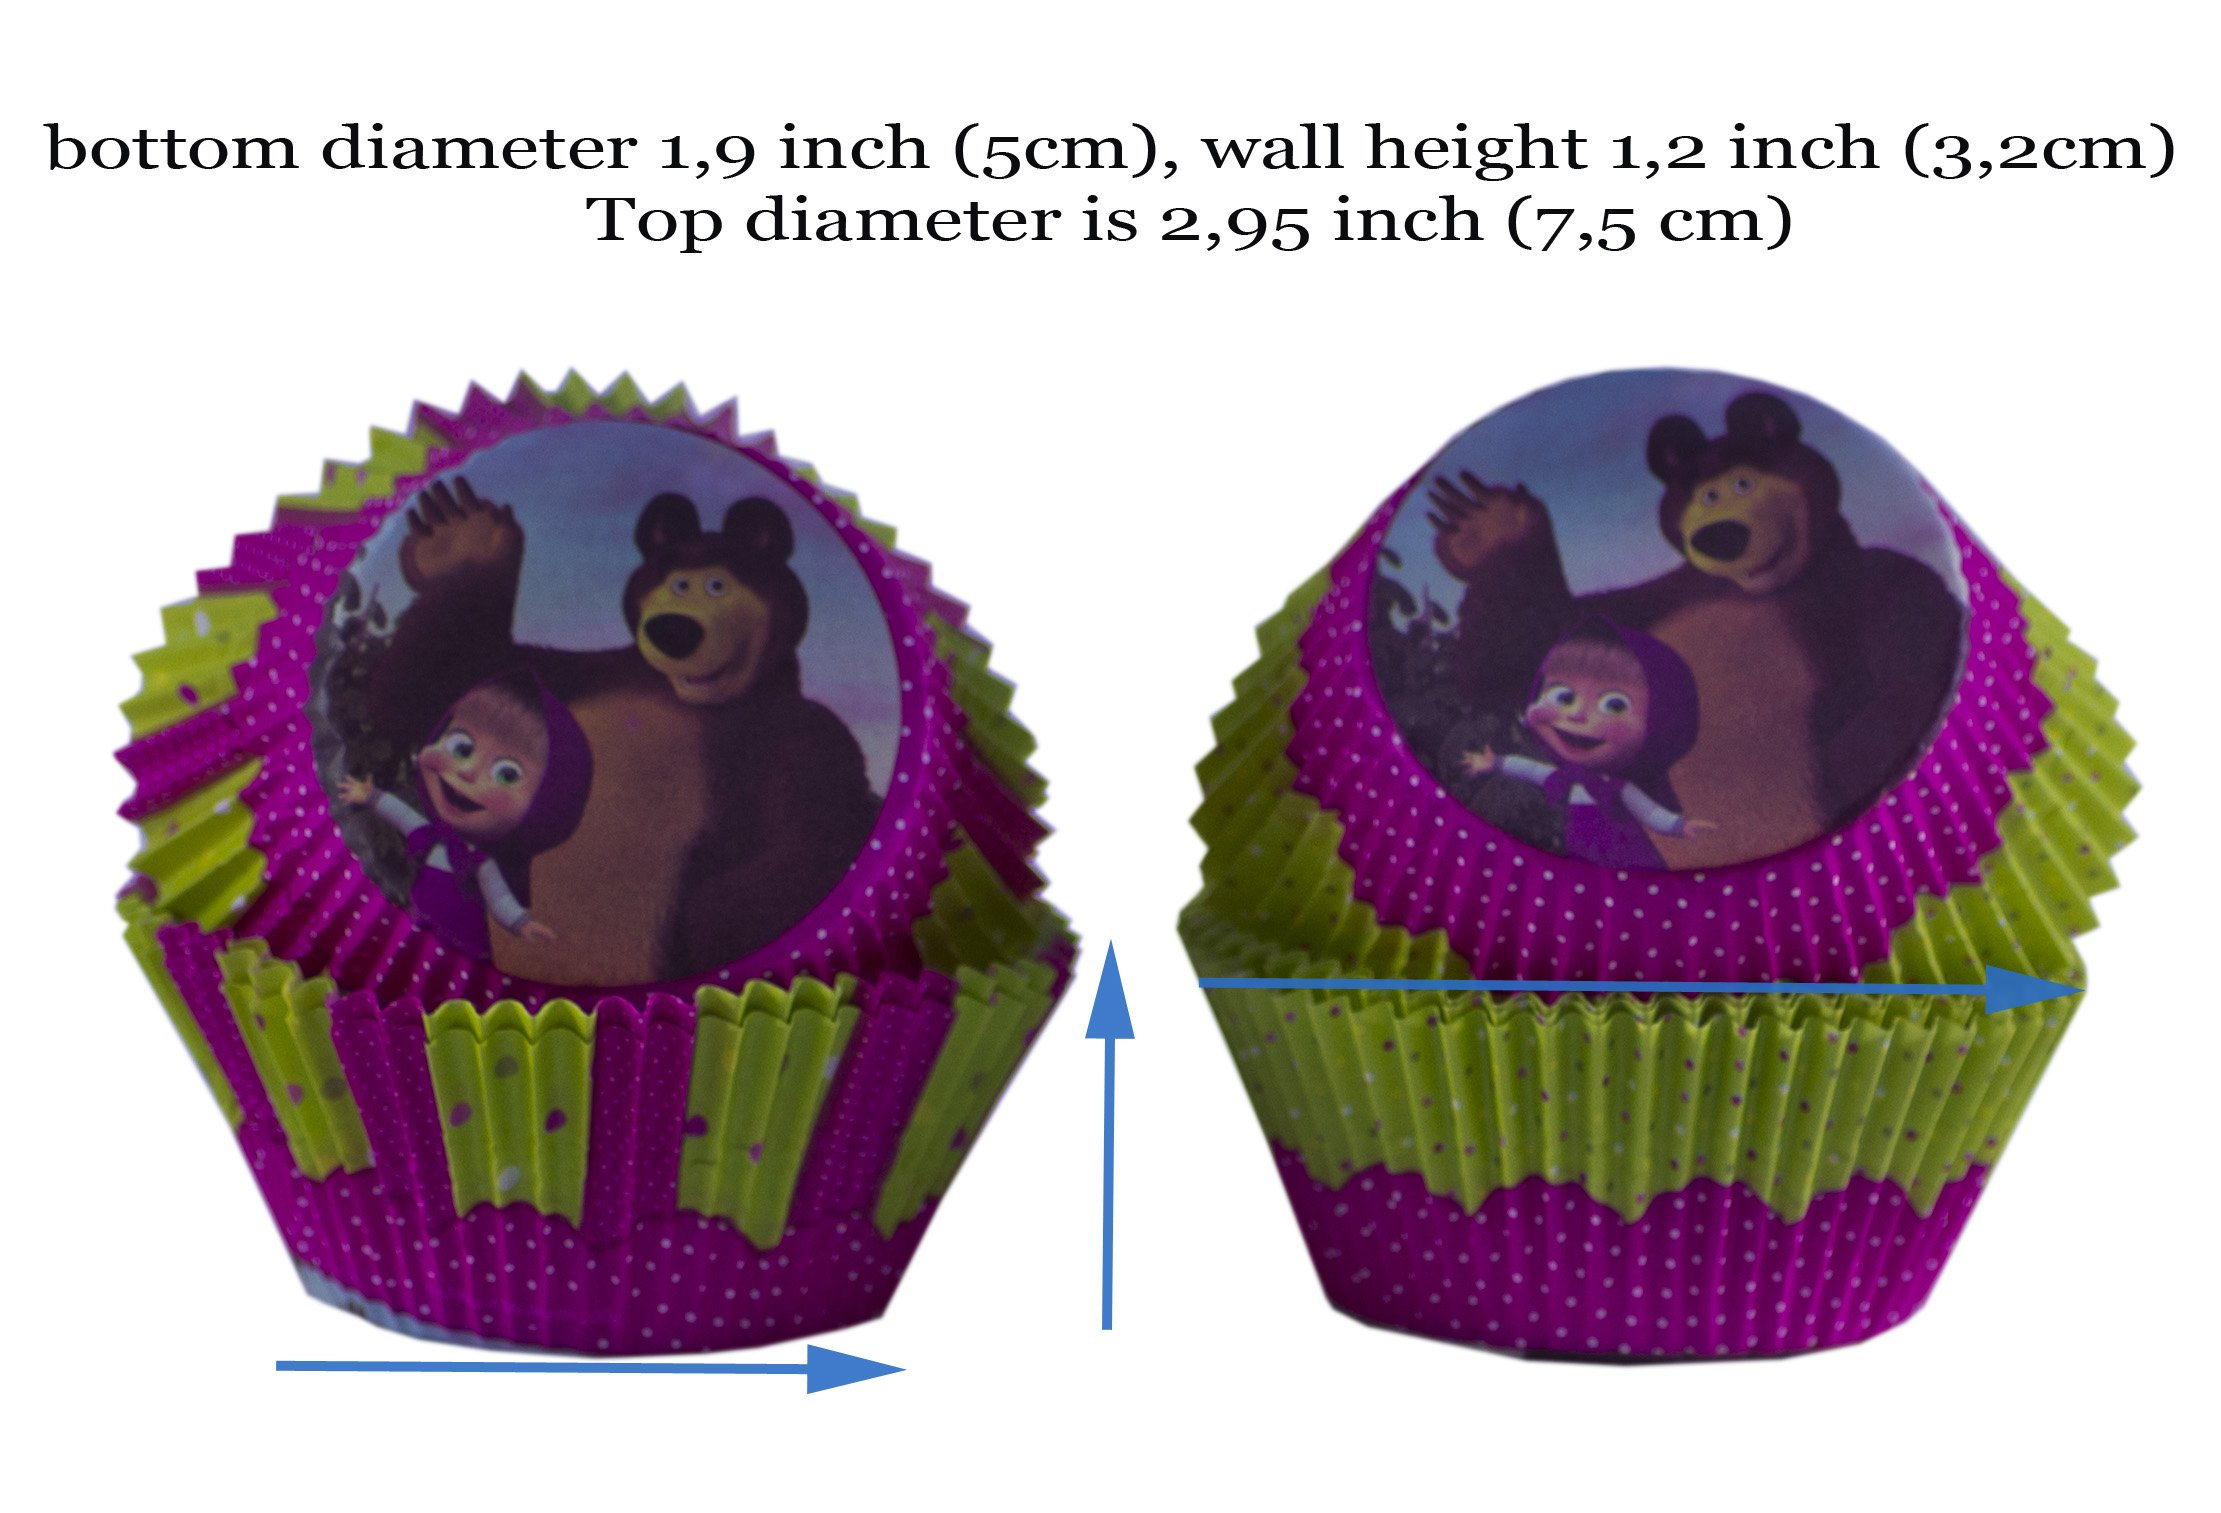 Set of Bright Printed Backing Cups 24 pcs and 24 Picks Topper Food Decoration Masha and the Bear for Cakes Cupcakes Muffins Must Have Accessories for the Party and Birthday Masha y el Oso para niños by Masha and the Bear (Image #7)